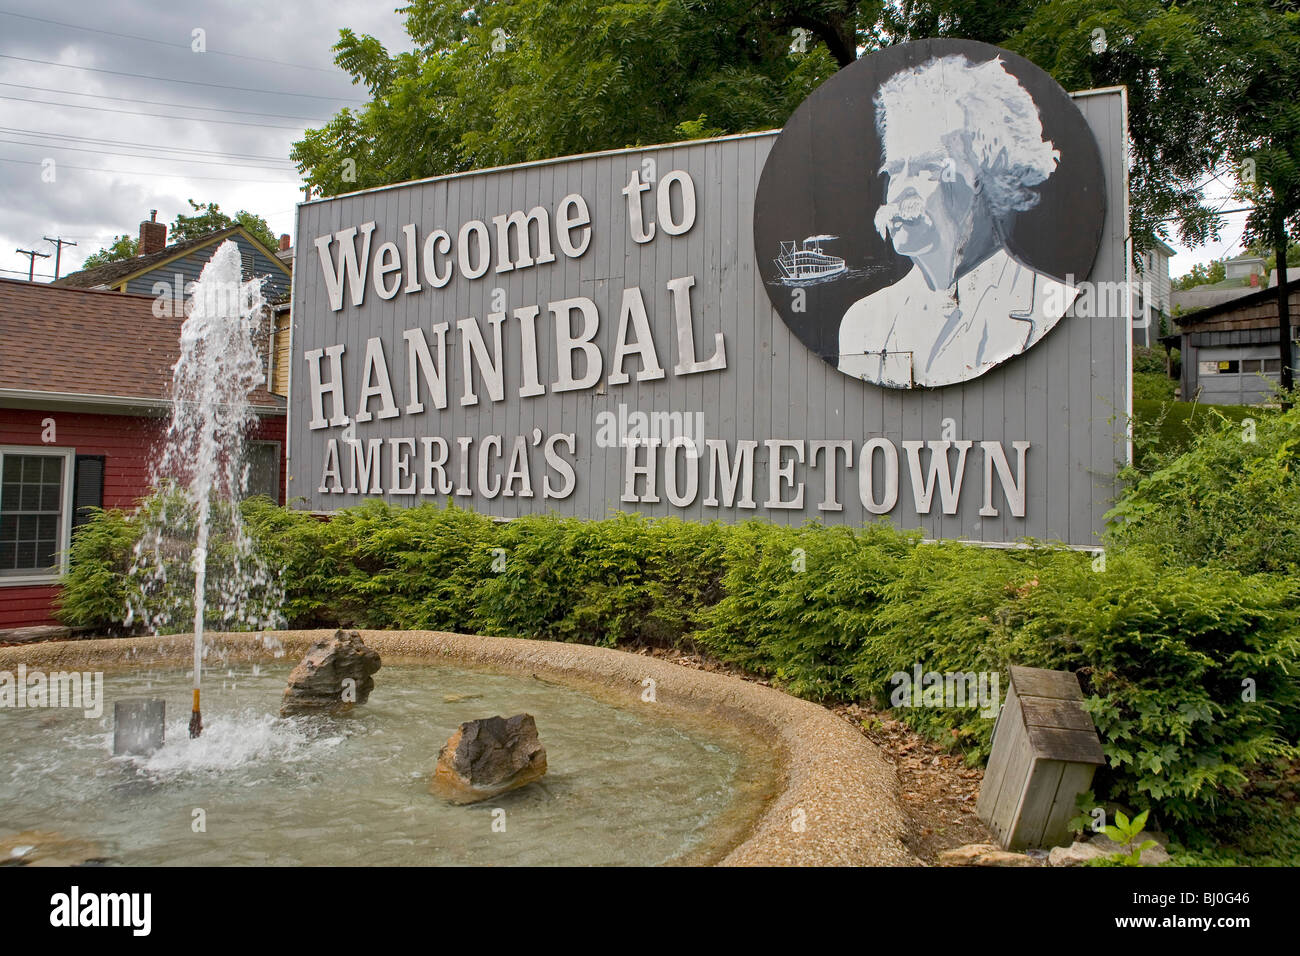 Hannibal Visitors Bureau - Stock Image